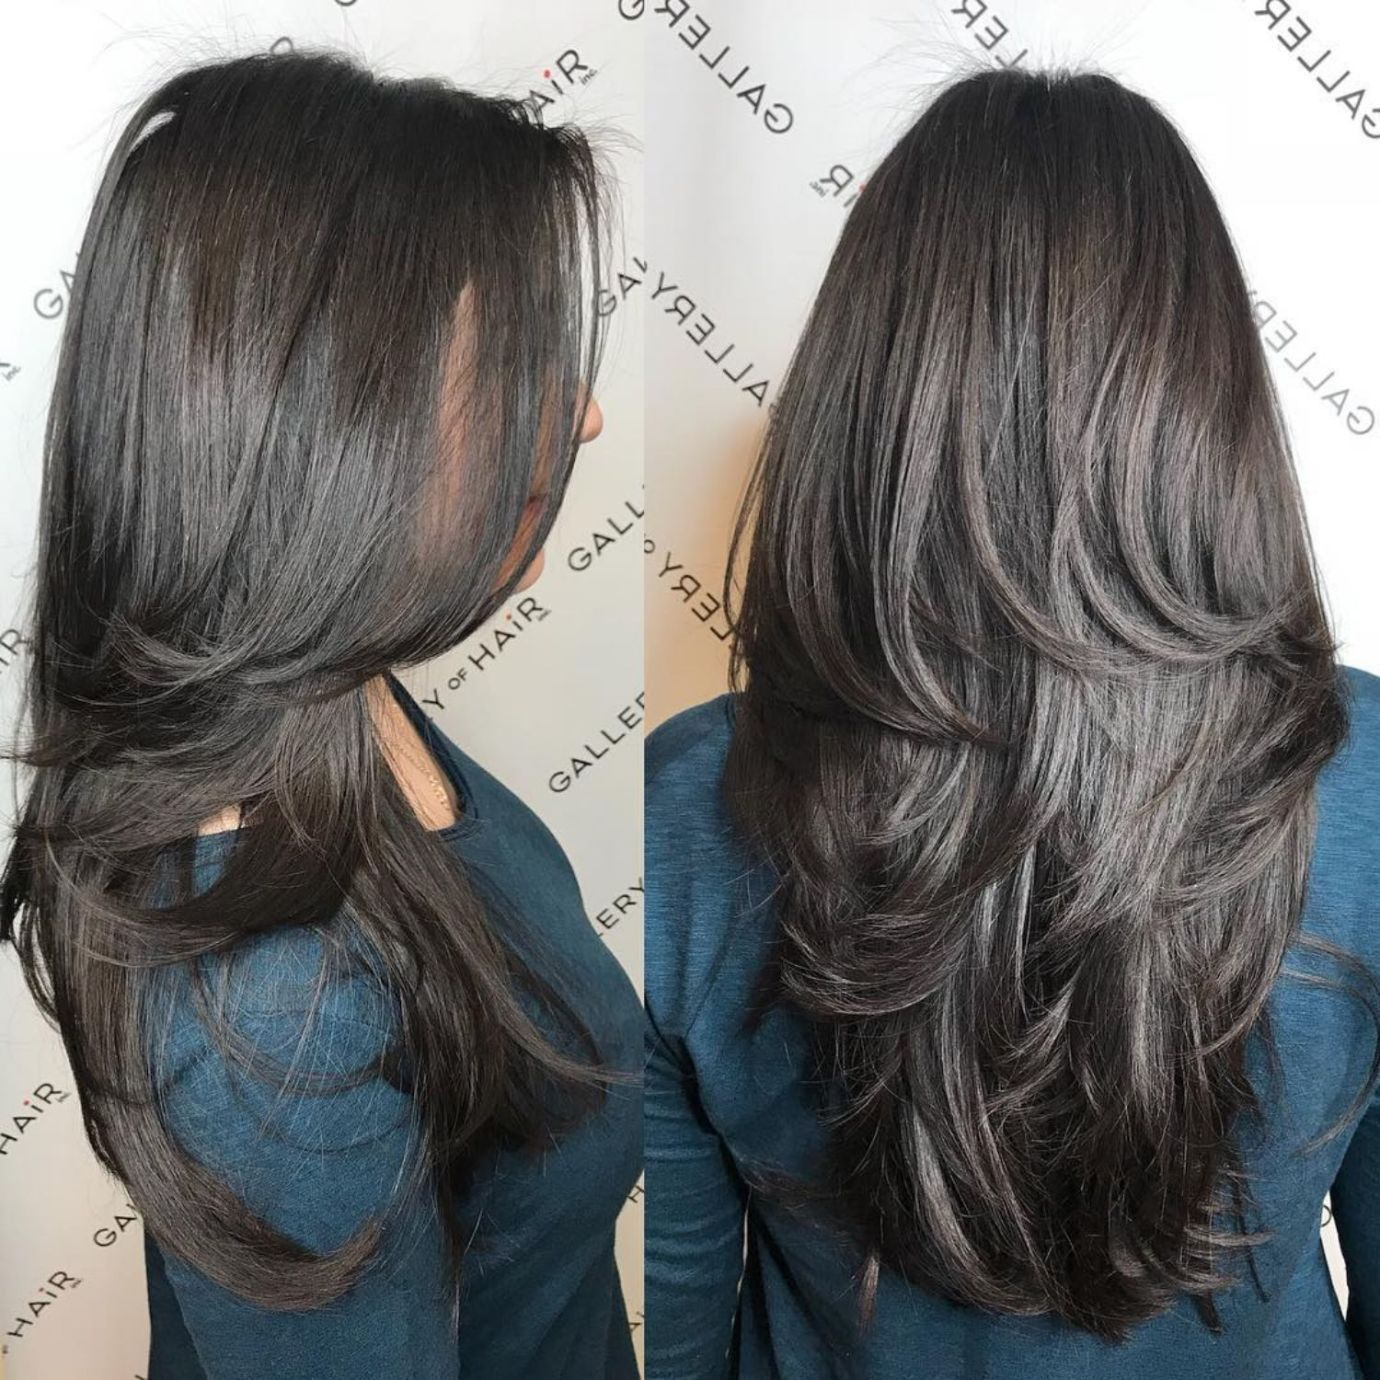 Haircut With Layers For Thick Long Hair | Long thick hair, Long layered  hair, Haircuts for long hair with layers